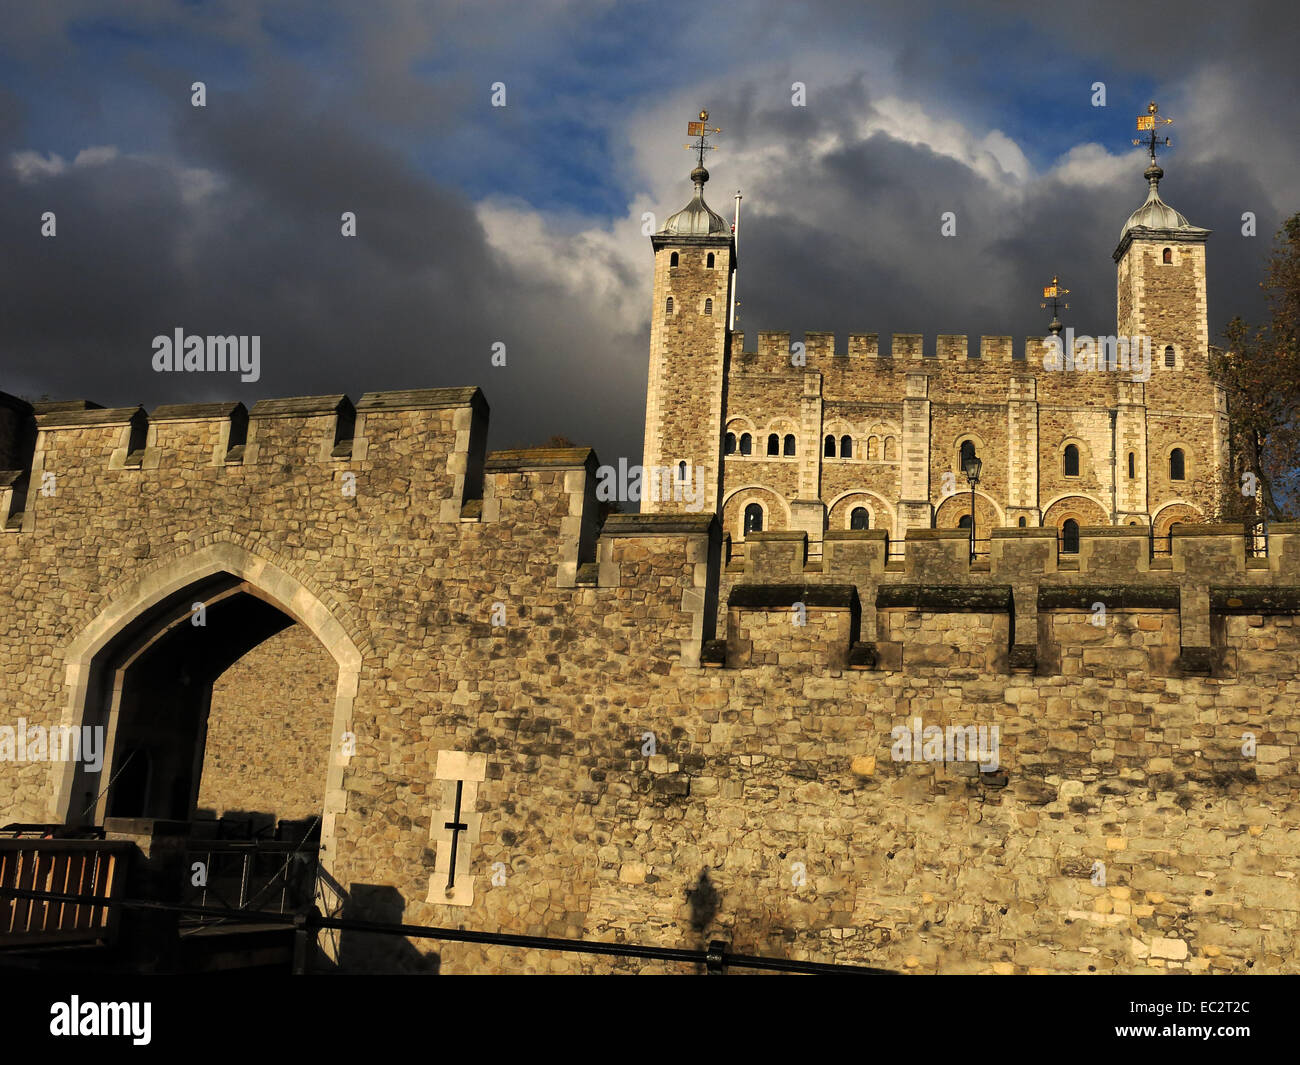 Tower of London with dramatic sky, City of London, England, UK Stock Photo